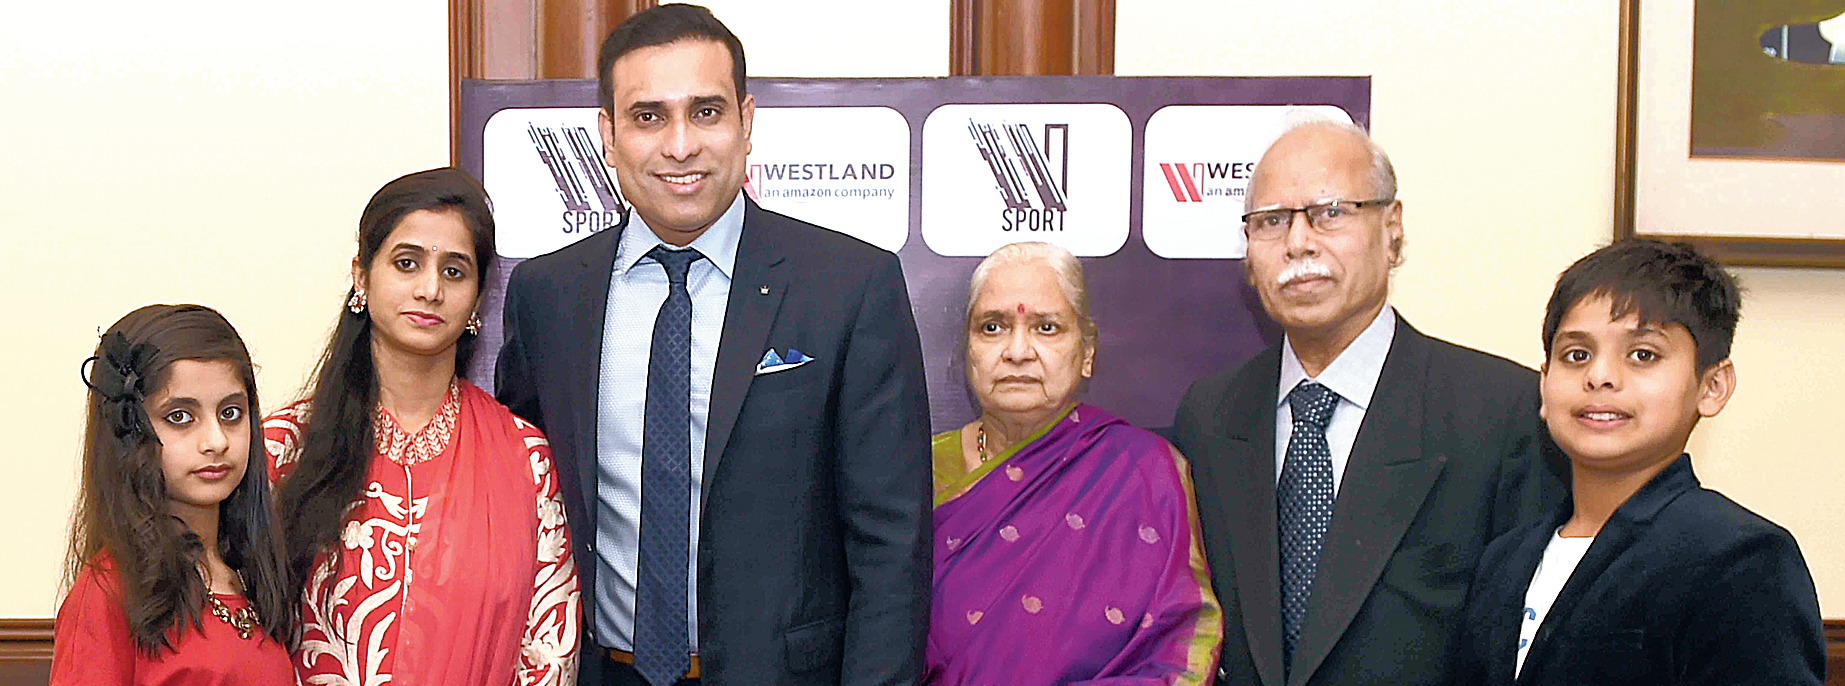 VVS Laxman with parents Dr V. Shantaram and Dr V. Satyabhama, wife Sailaja, daughter Achinthya and son Sarvajit in the city on Wednesday.